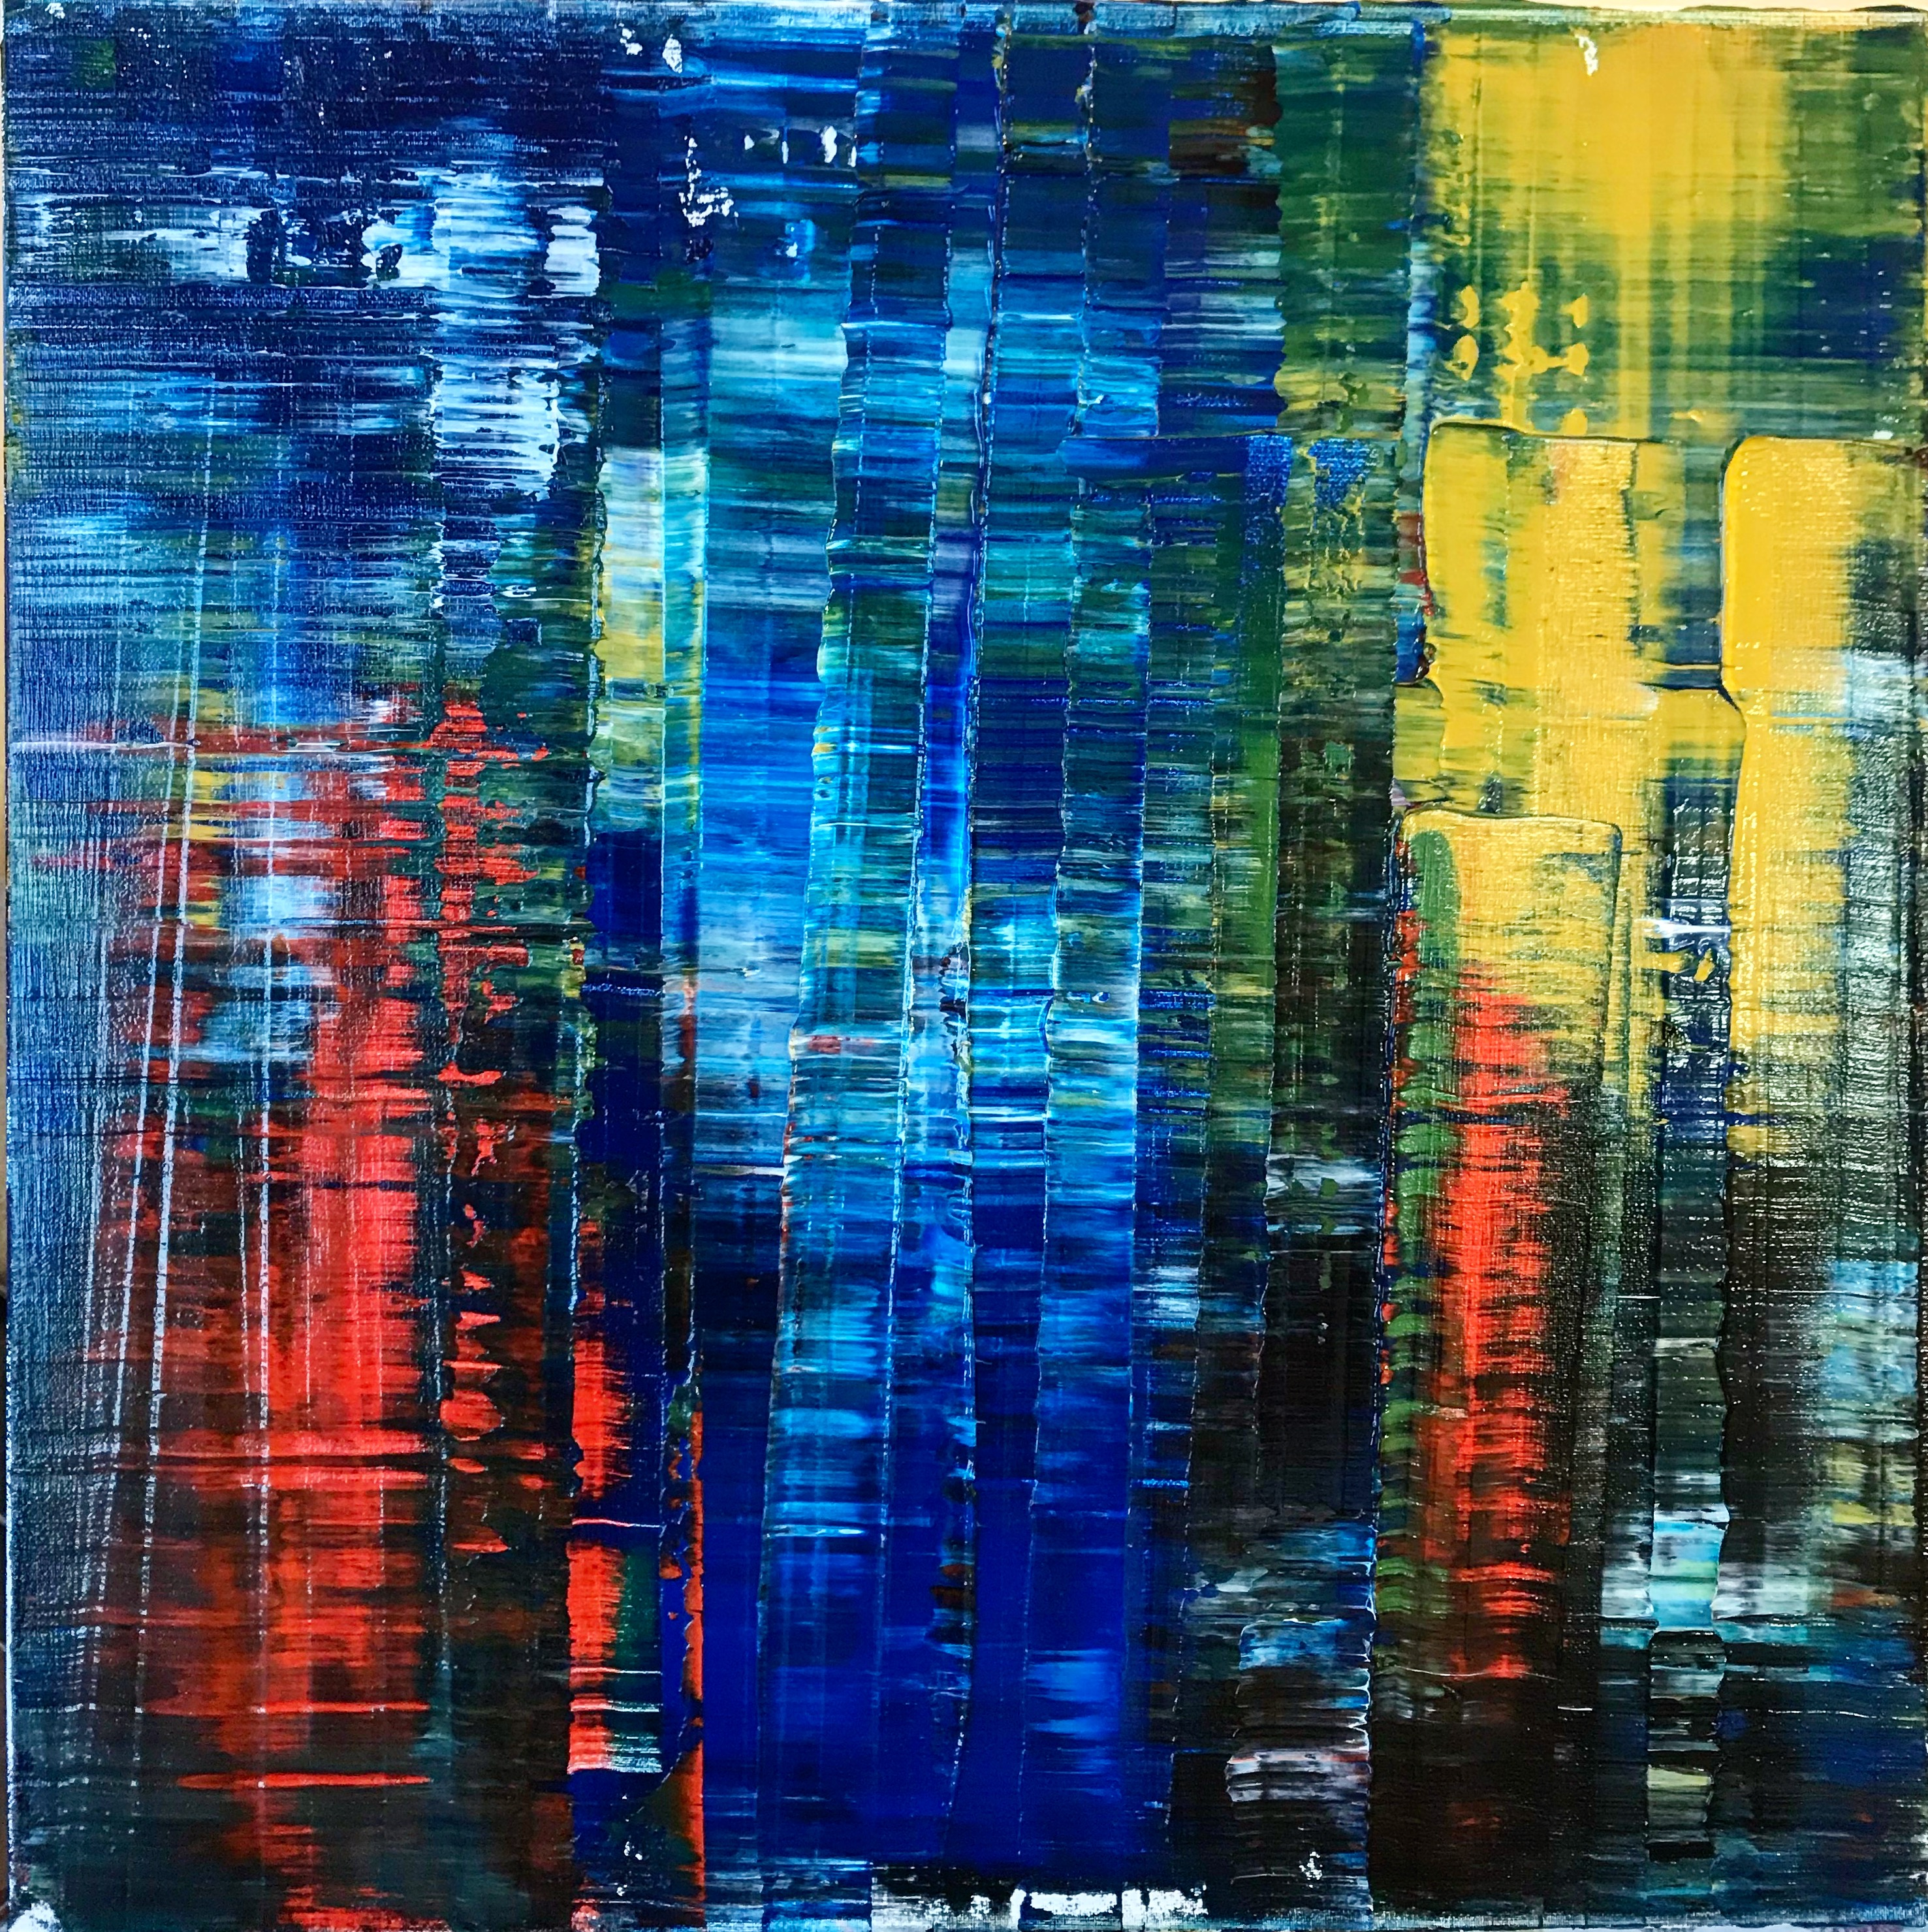 Abstract Paintings by Wyrembelska